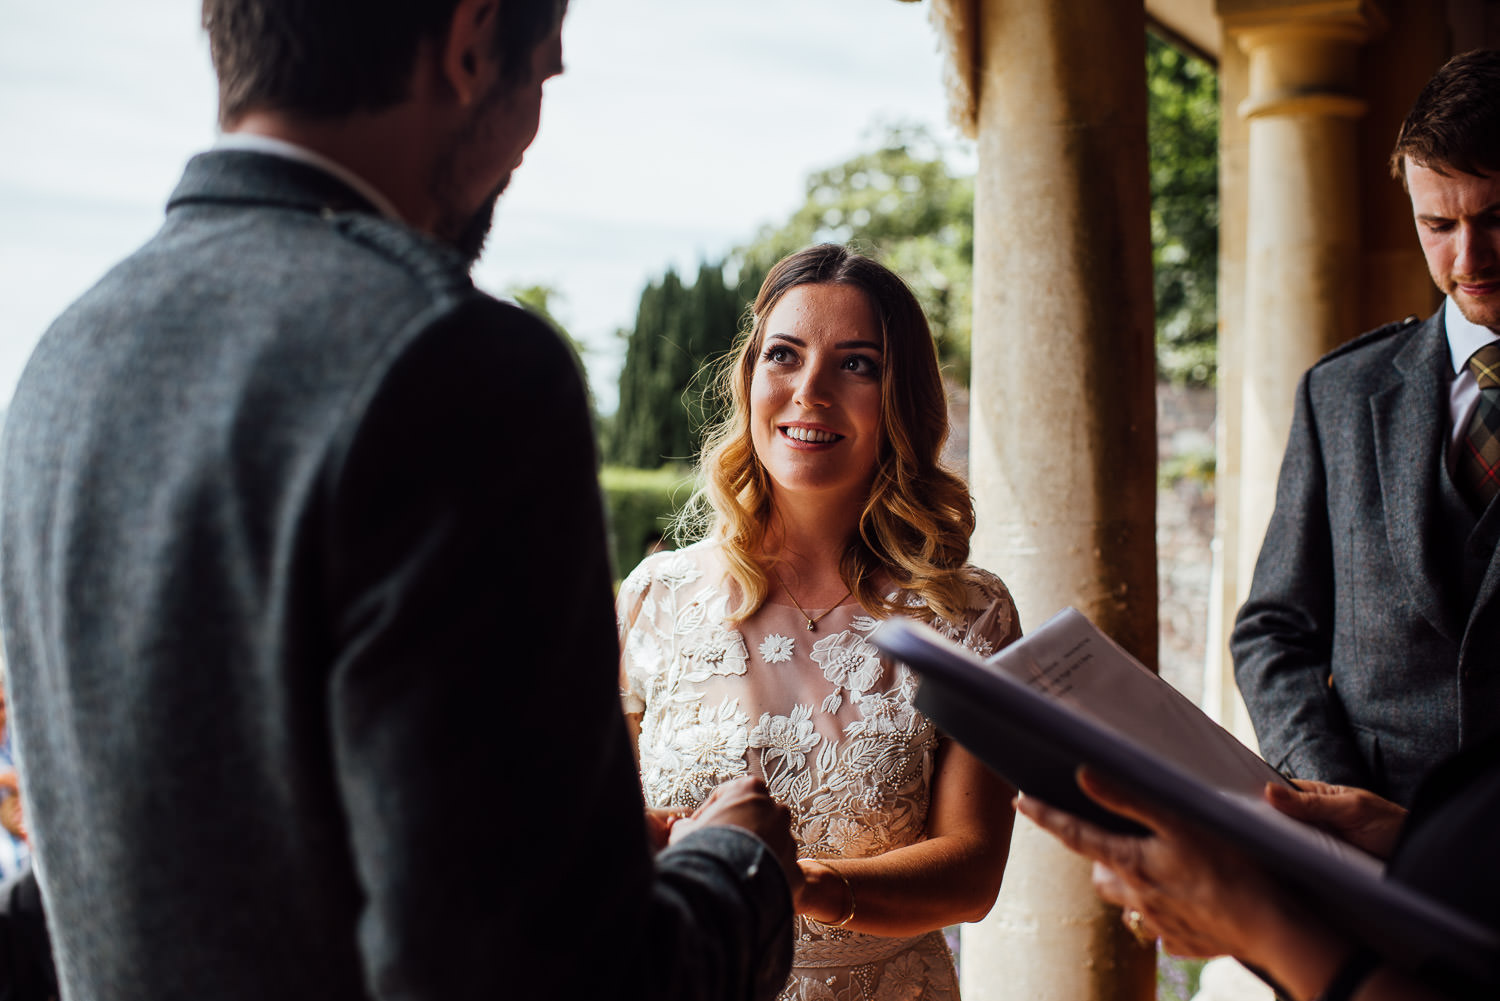 Wedding vows in Barley Wood House Bristol Wedding by bristol wedding photographer the shannons photography